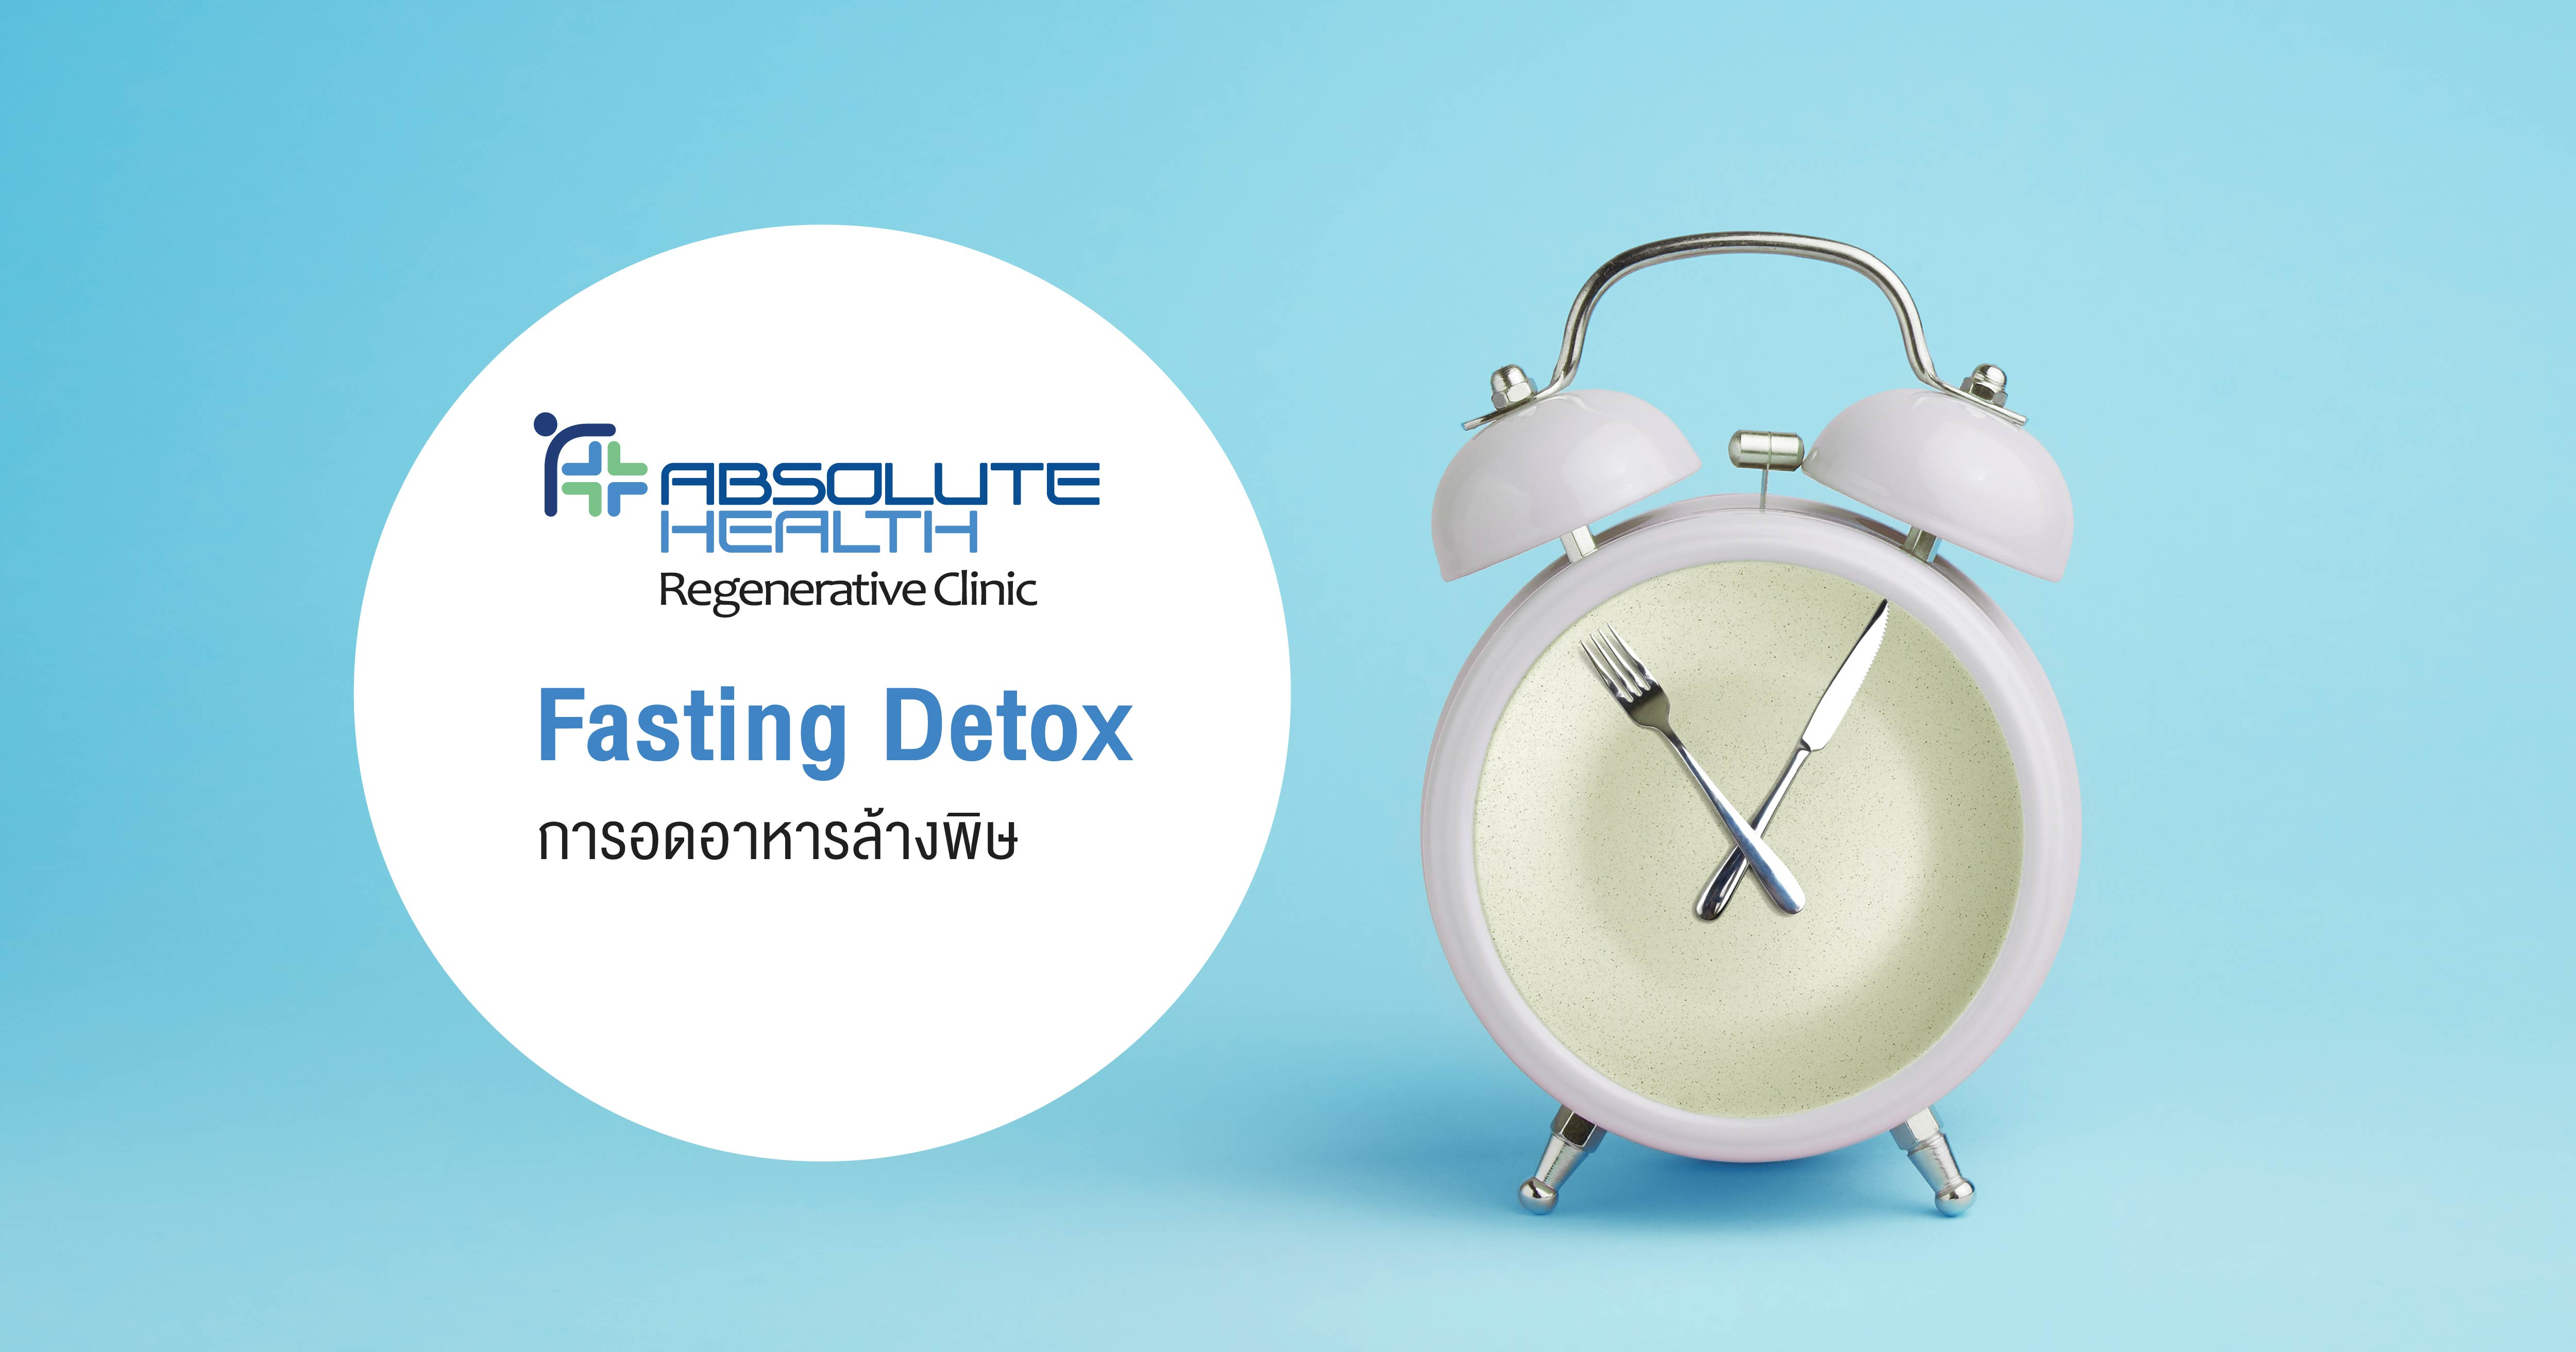 All about Detoxification through Fasting